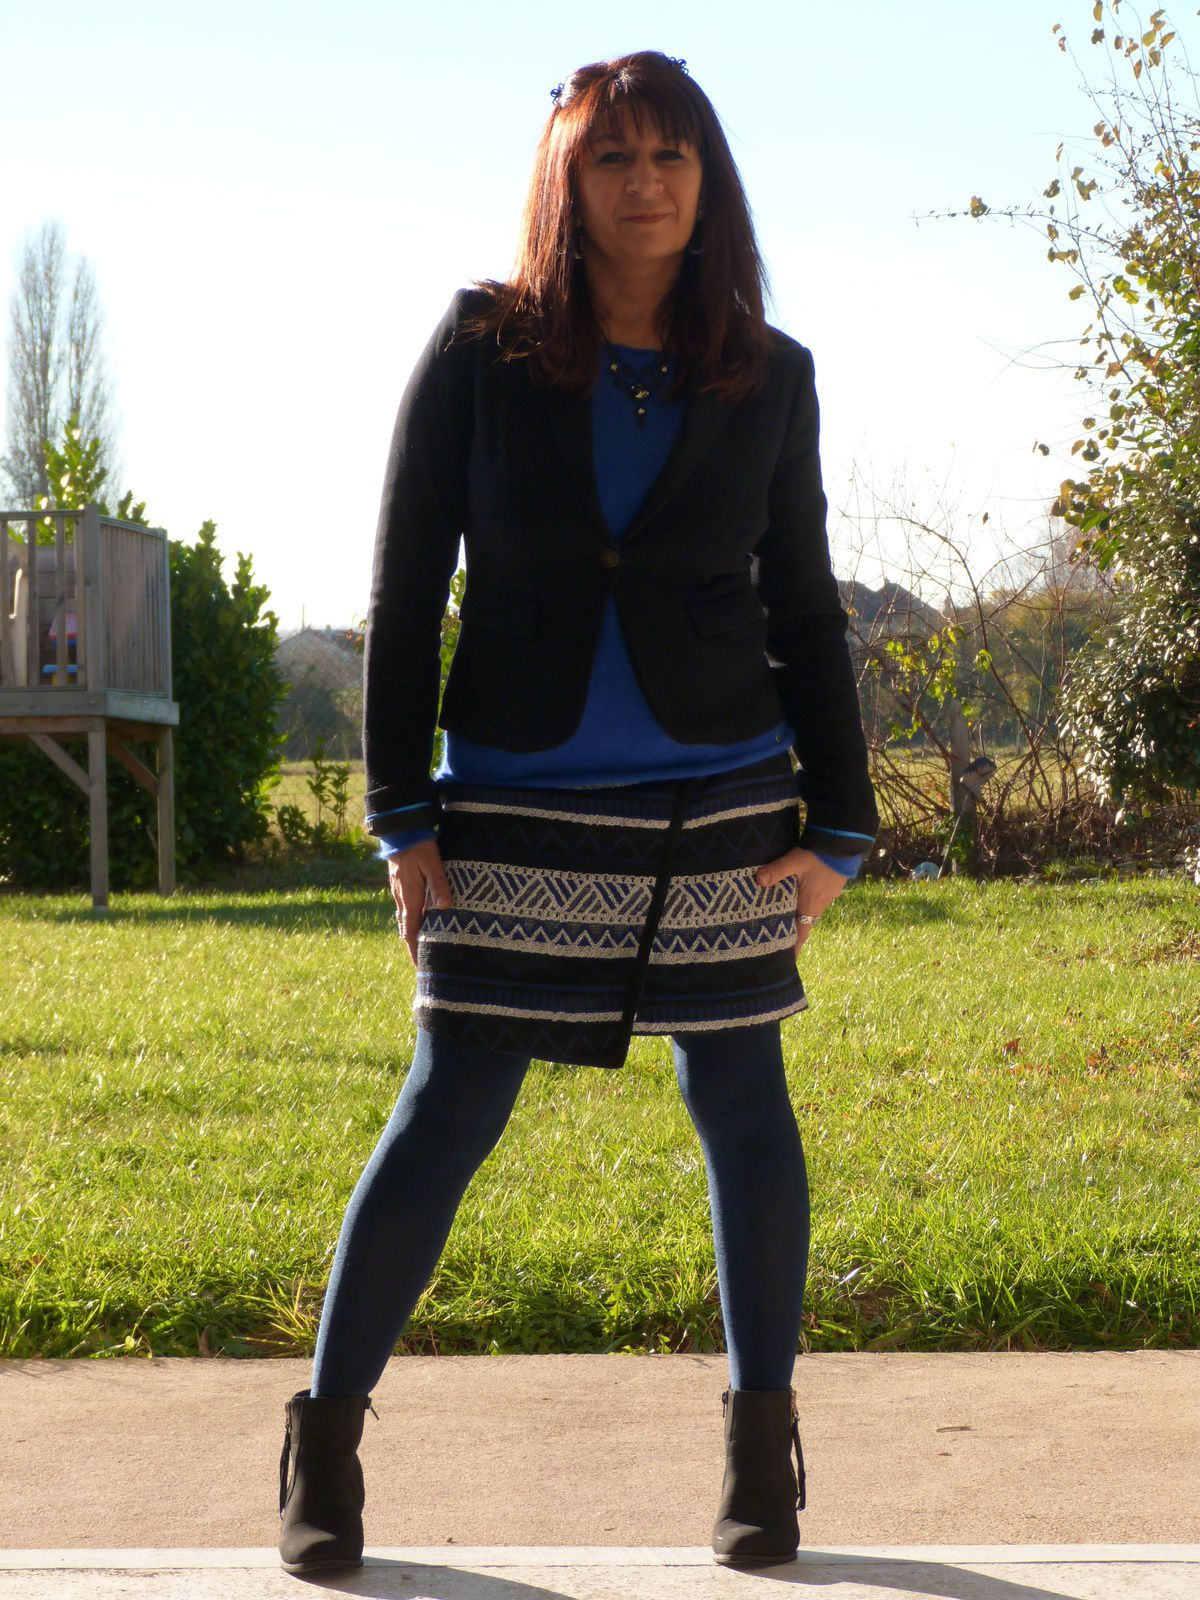 veste : PIMKIE ,Pull : BONOBO  , jupe et collier: PROMOD  bottines : FASHION SHOPPING.